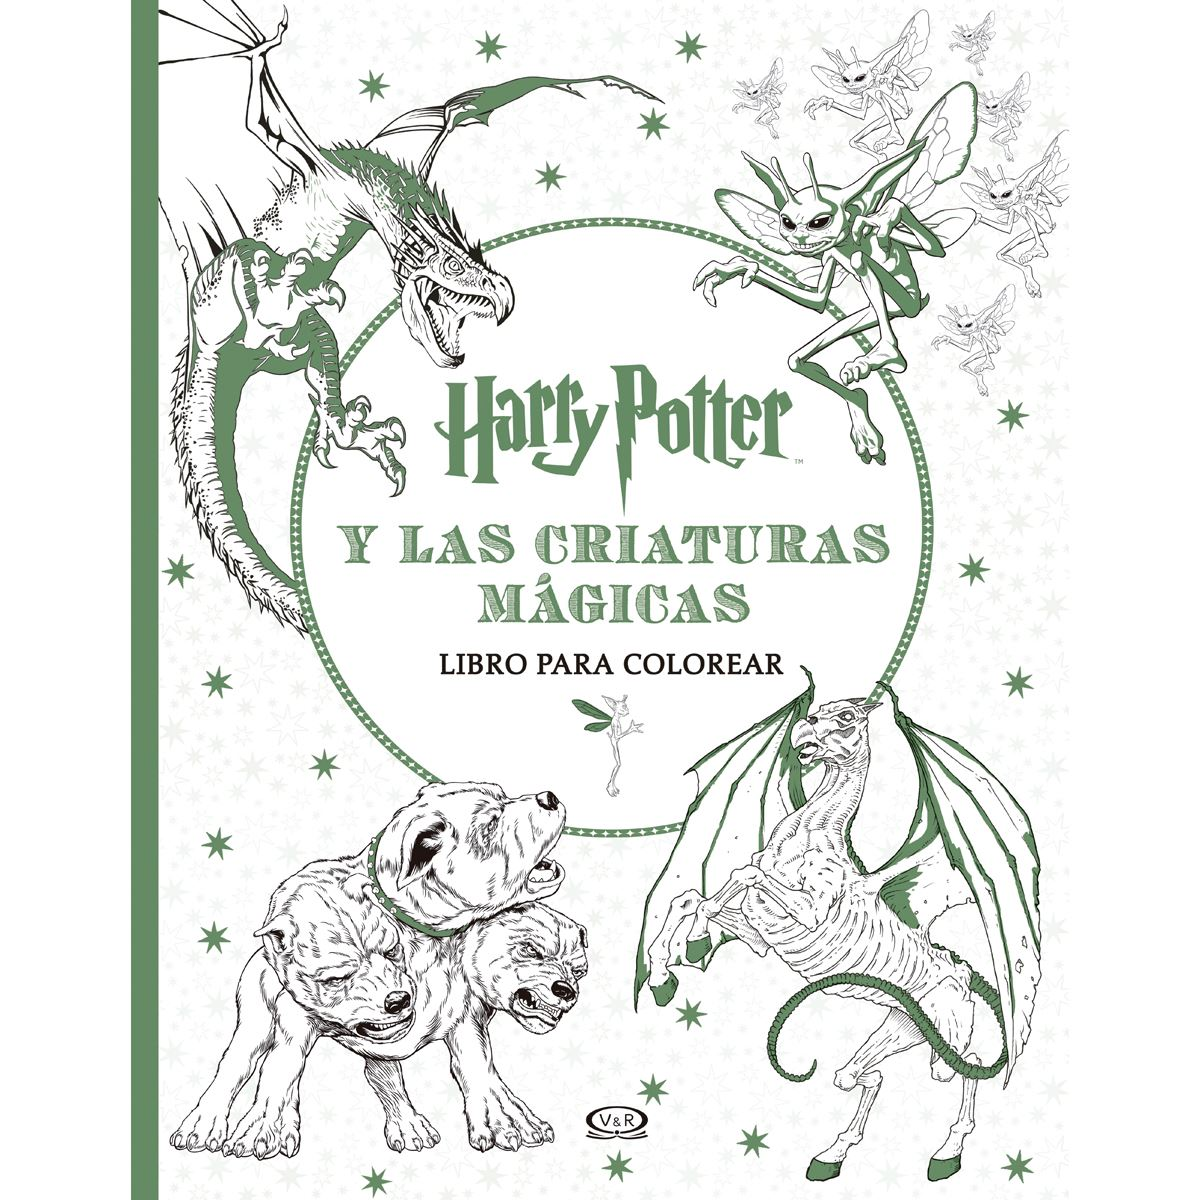 Harry potter y las criaturas mágicas libro para colorear Libro ...